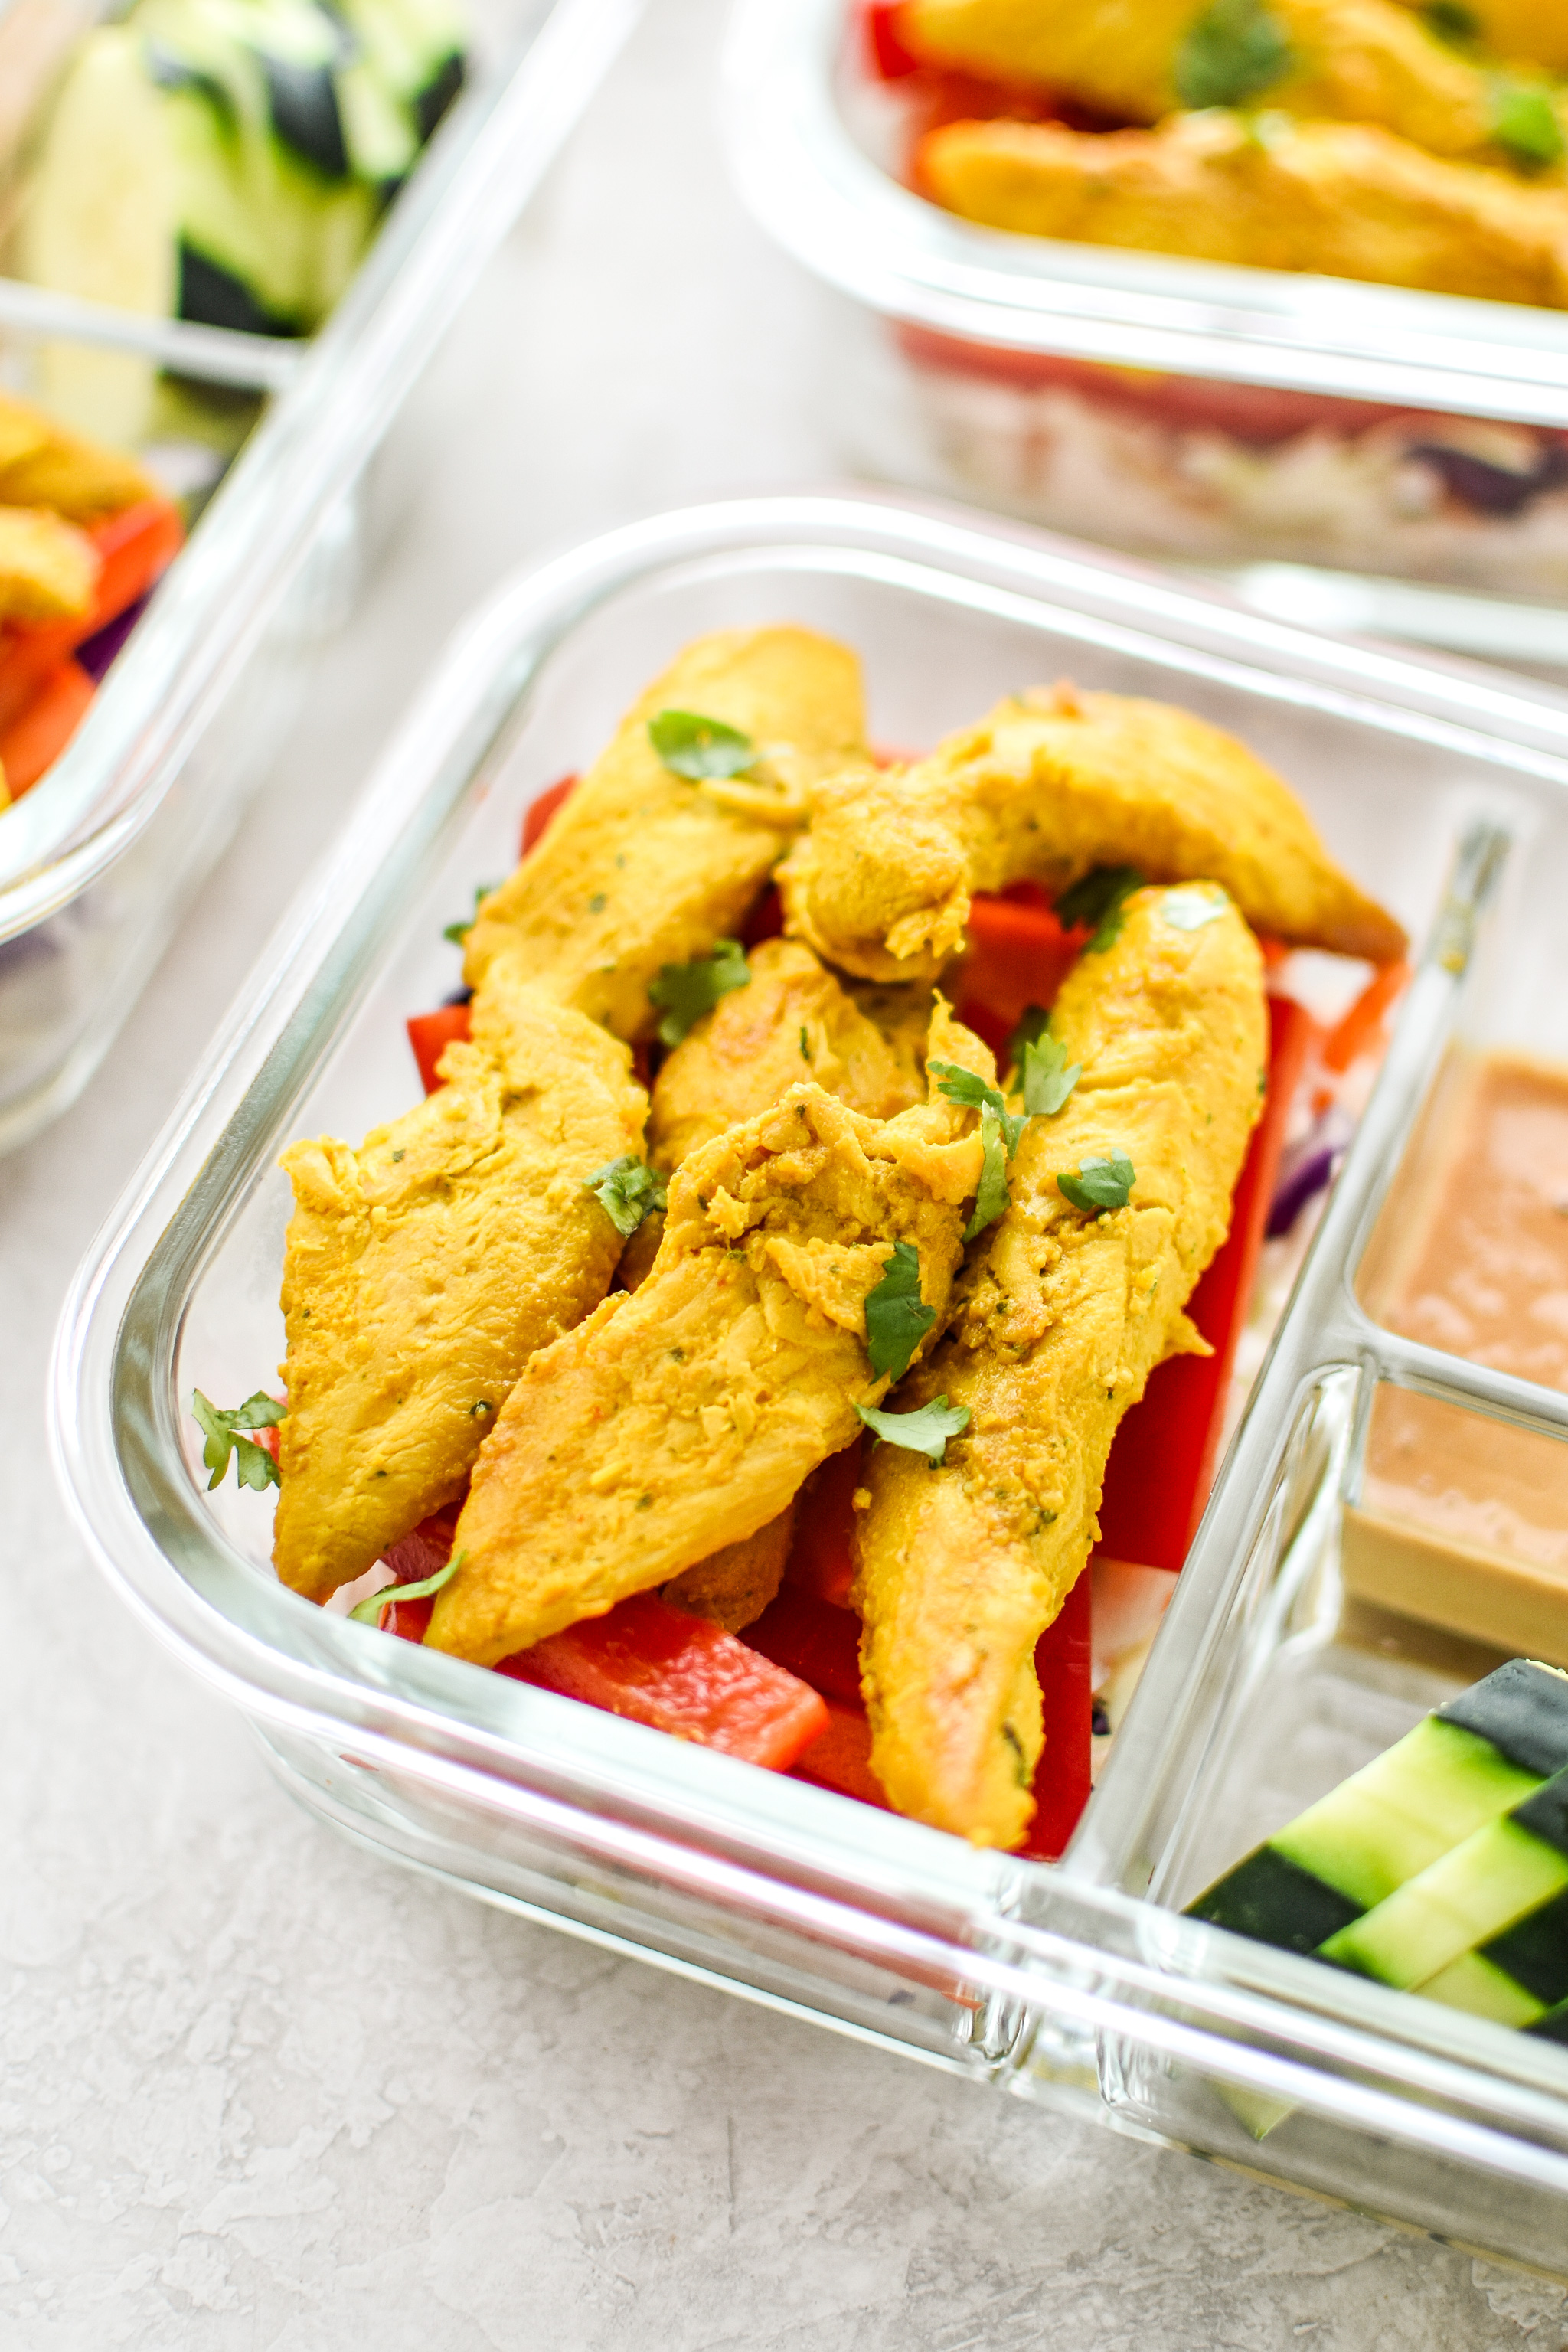 Meal Prep Satay Inspired Thai Chicken Salad Bowls portioned into meal prep containers, close up on the chicken.